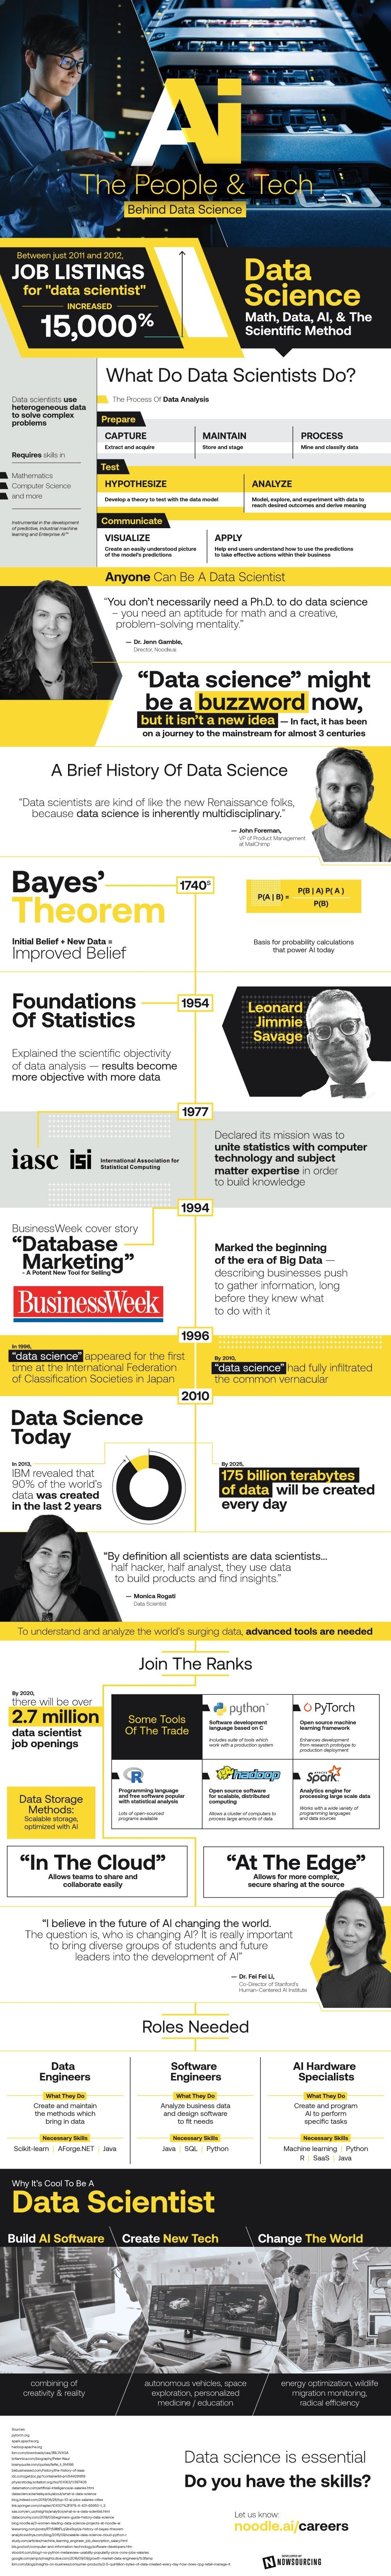 The Booming Field of Data Science #infographic